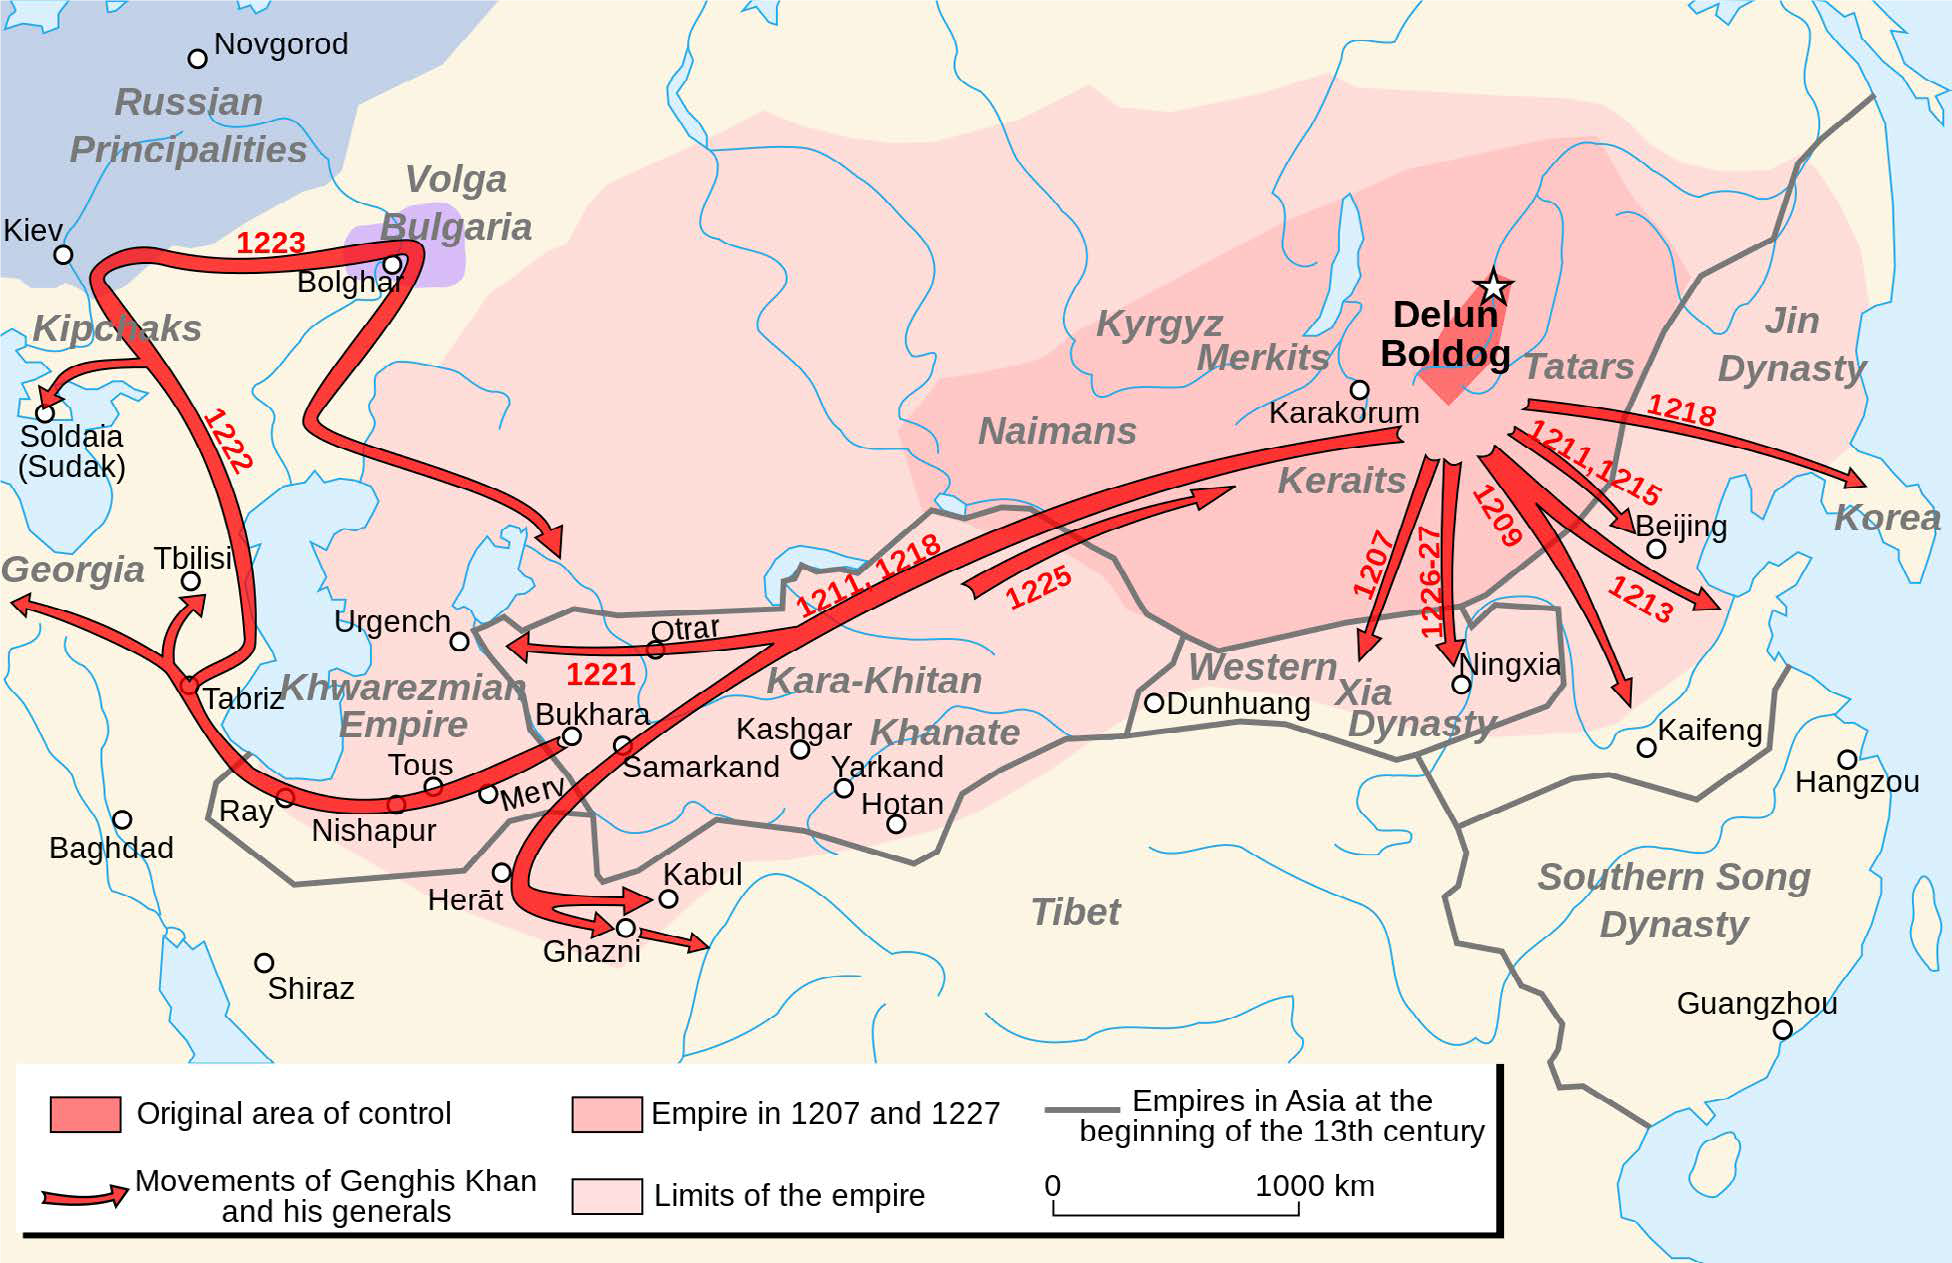 Central Asia: Mongol Empire to the Timurid Dynasty on